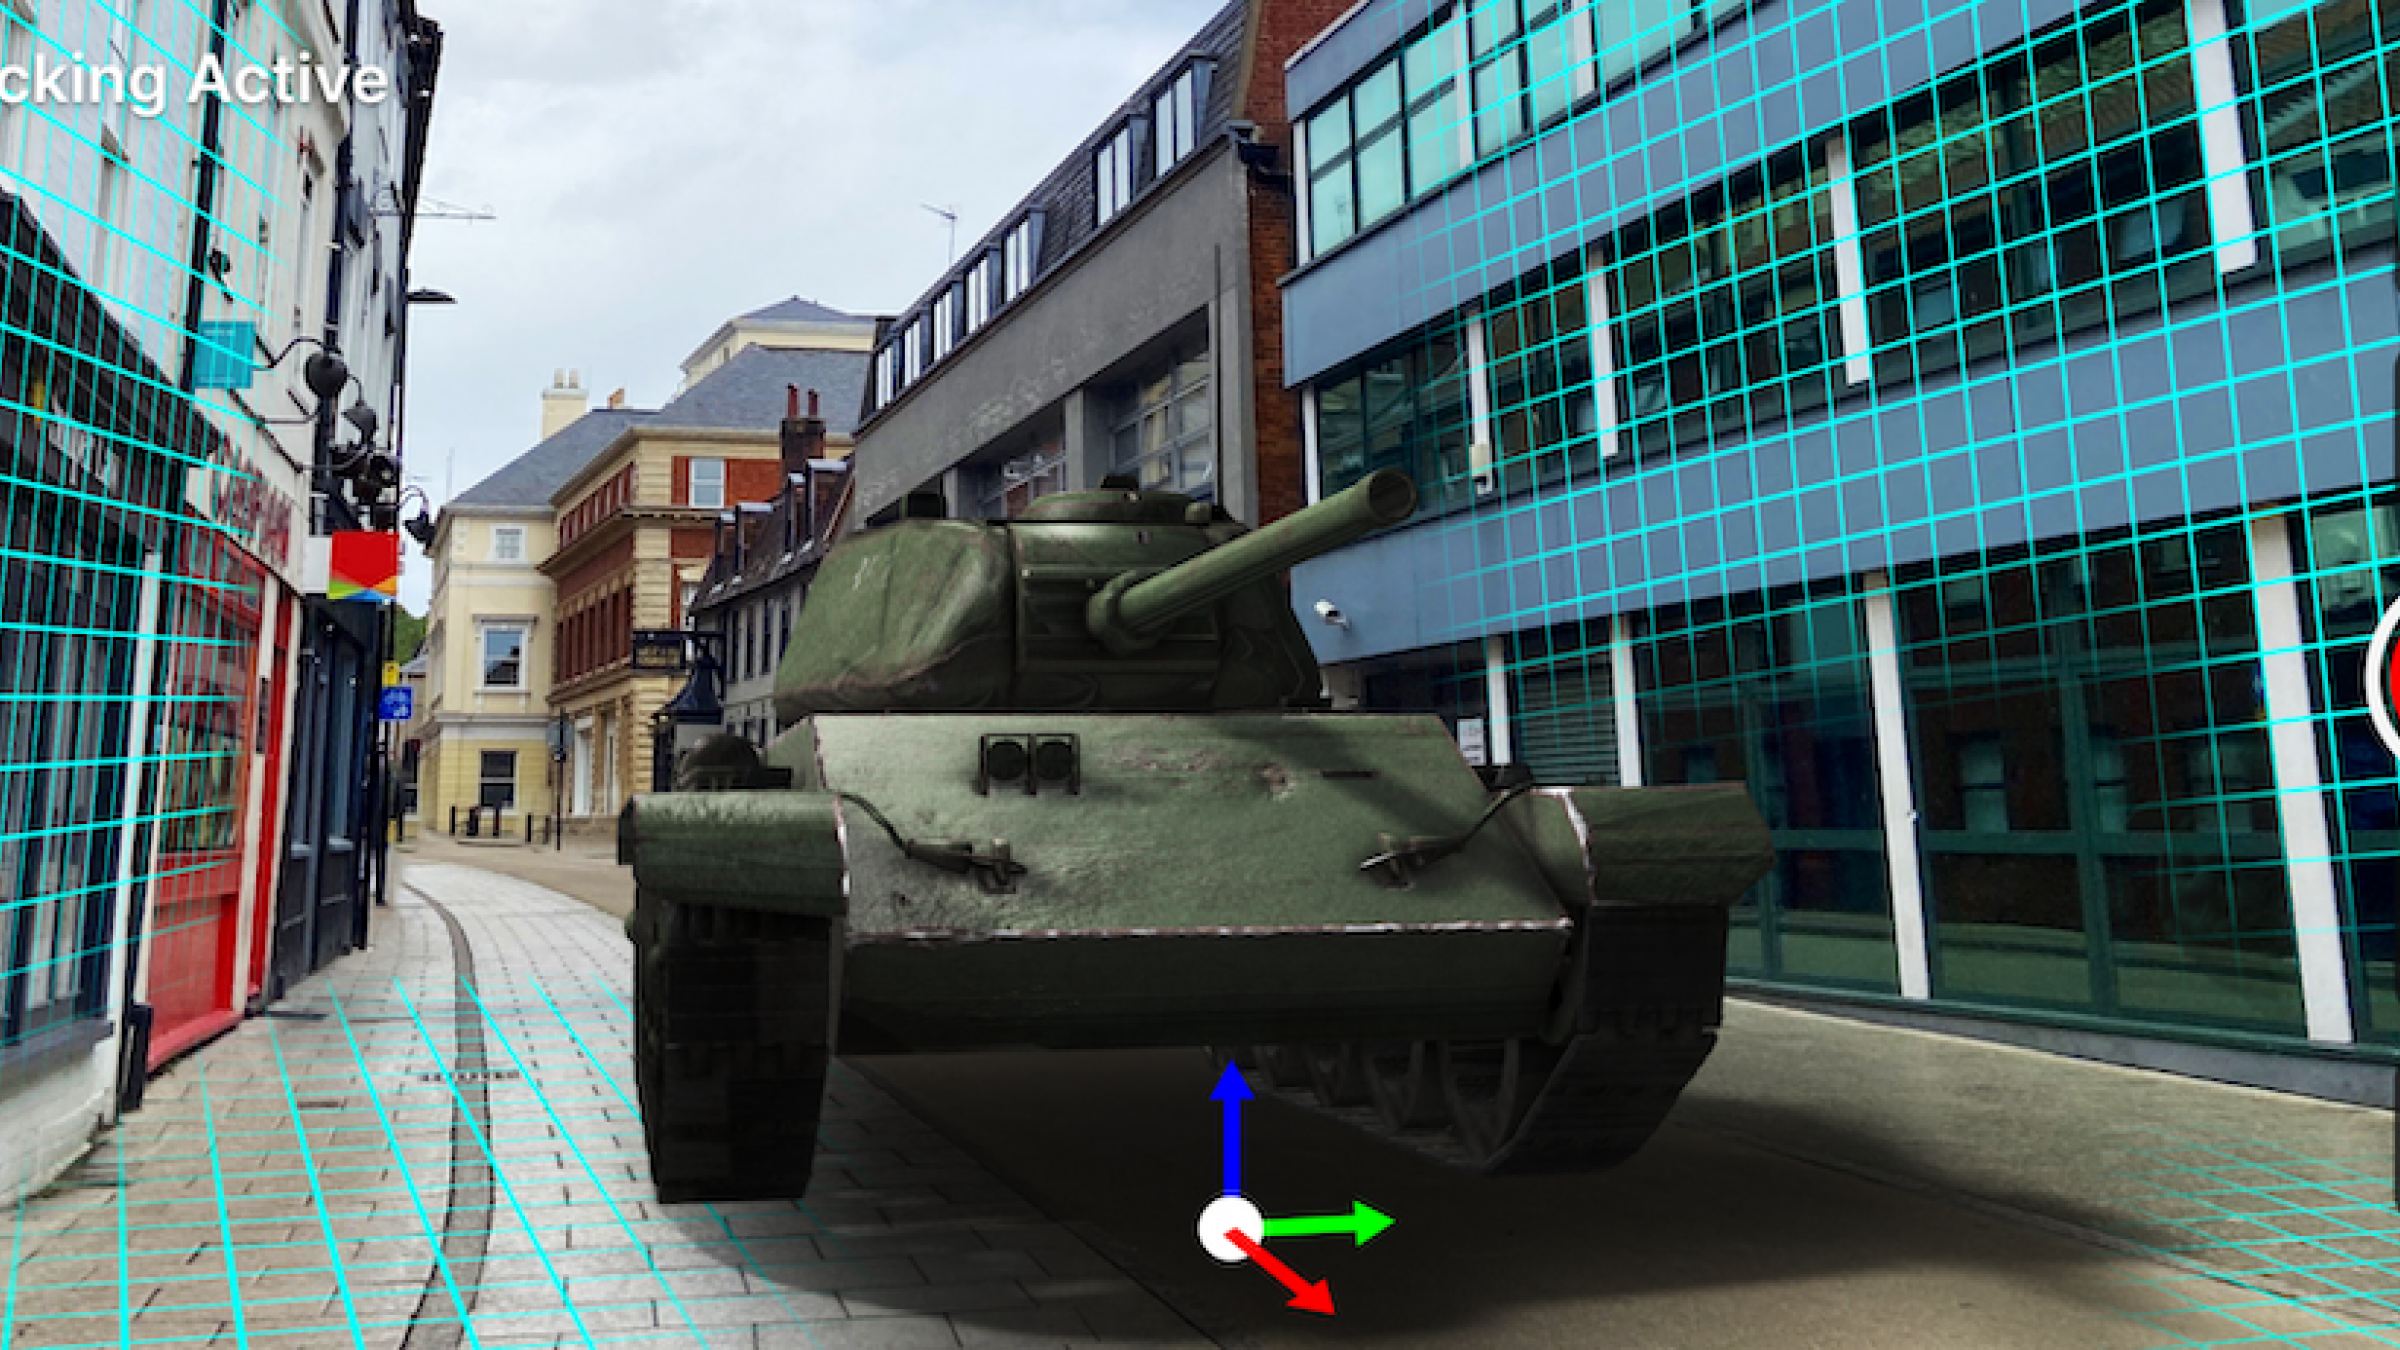 This Free App Tracks Your Smartphone Camera Movements for AR